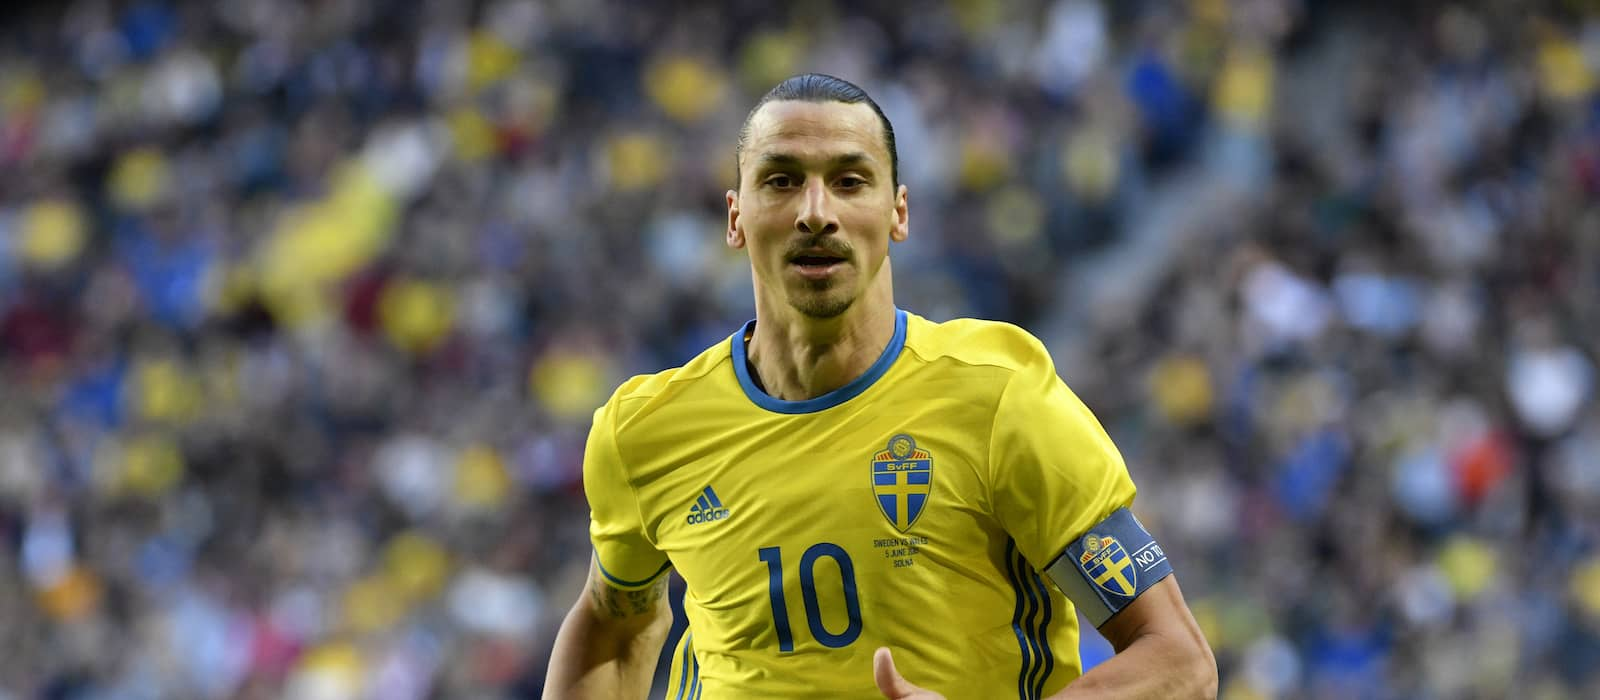 Zlatan Ibrahimovic will undergo a medical with Manchester United next week – report